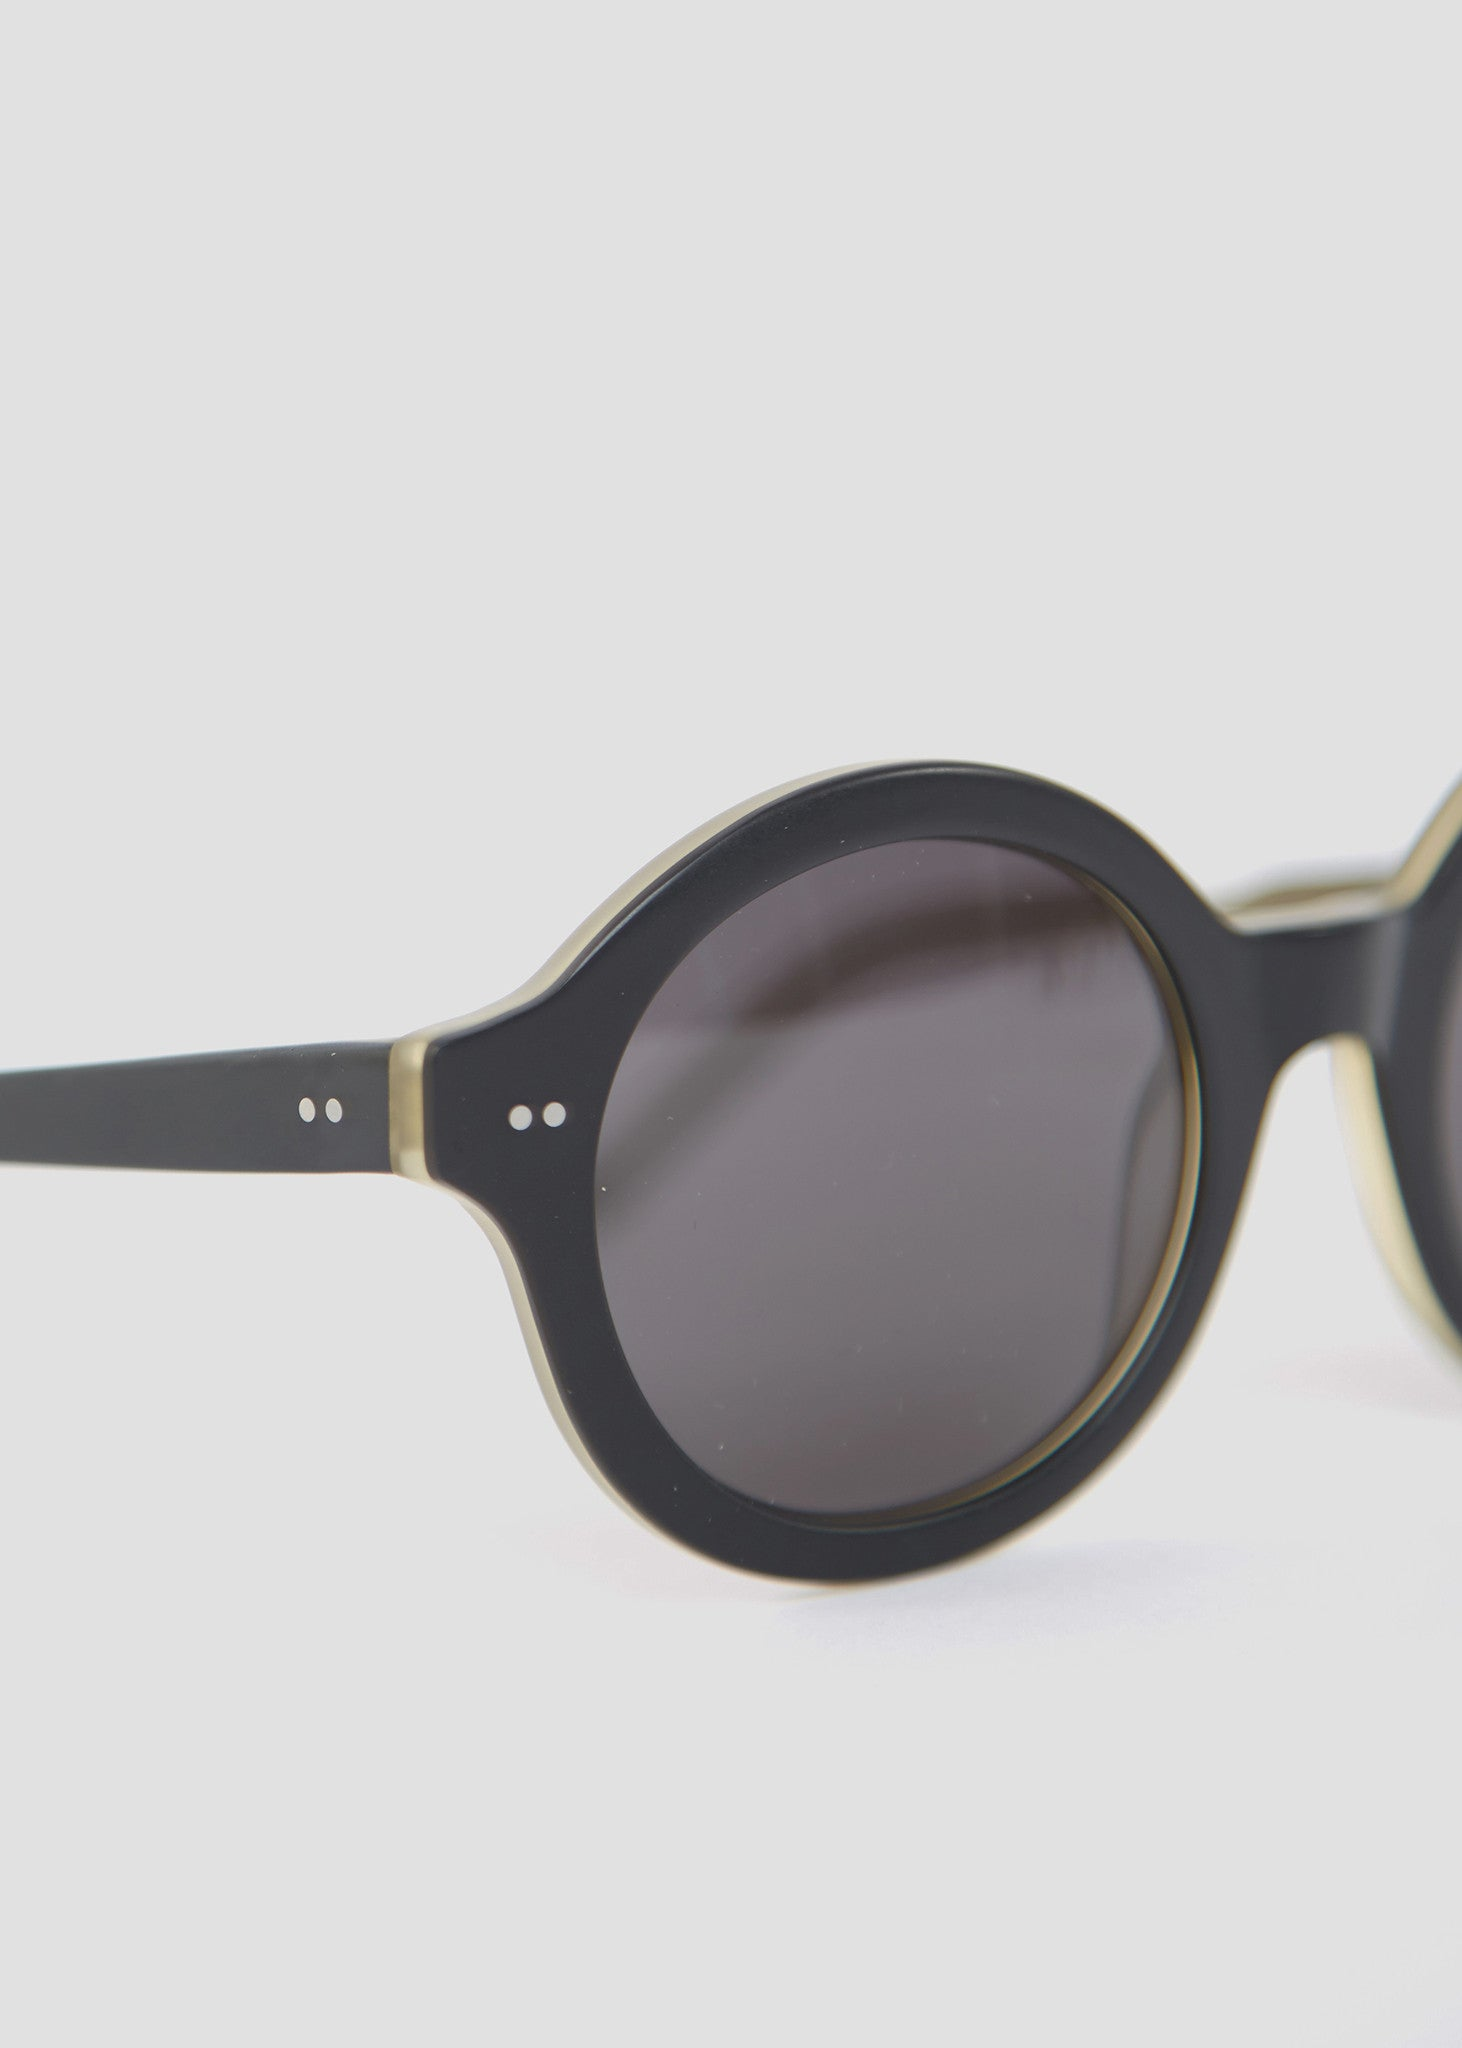 About A Round Sunglasses Black/Tobacco Stain Kaibosh Womens Eyewear- someplace